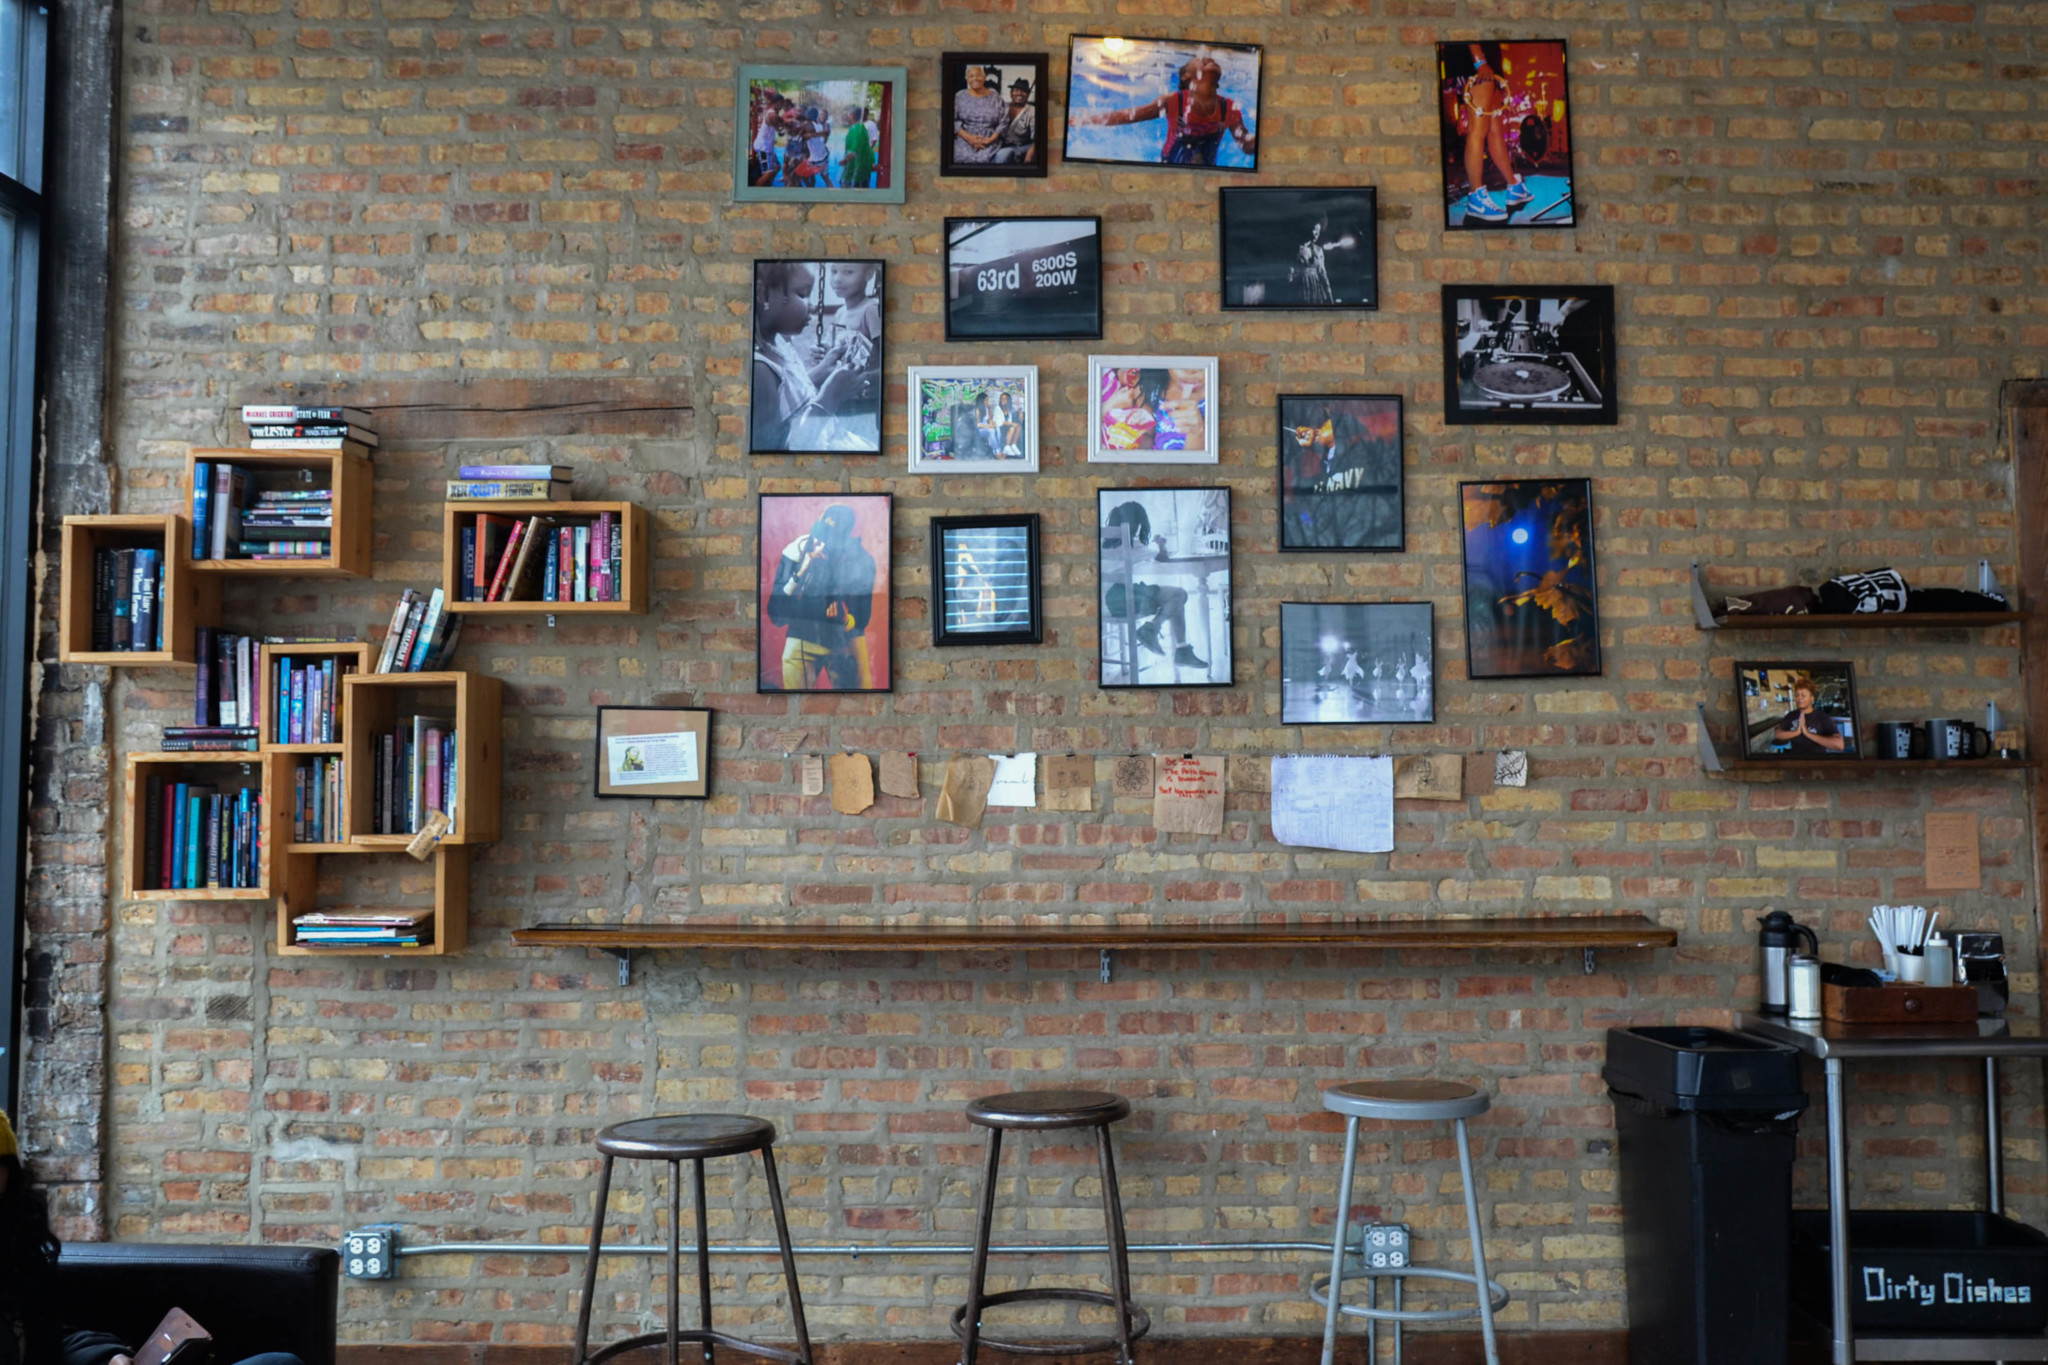 Room for Community at South Side Cafés